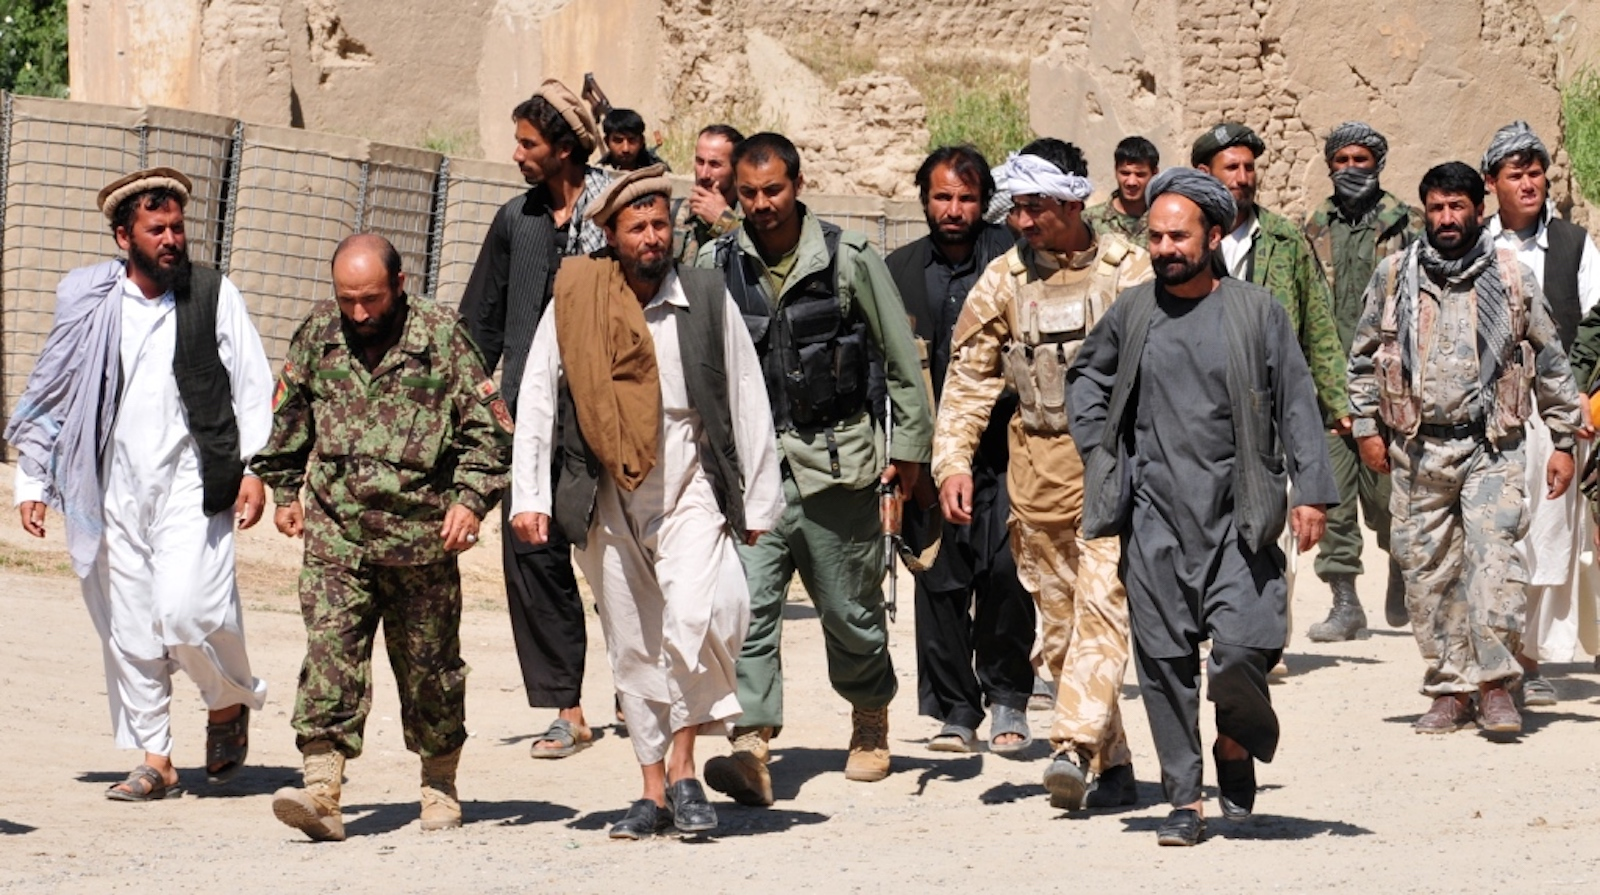 Taliban insurgents (Photo: Wikimedia Commons)